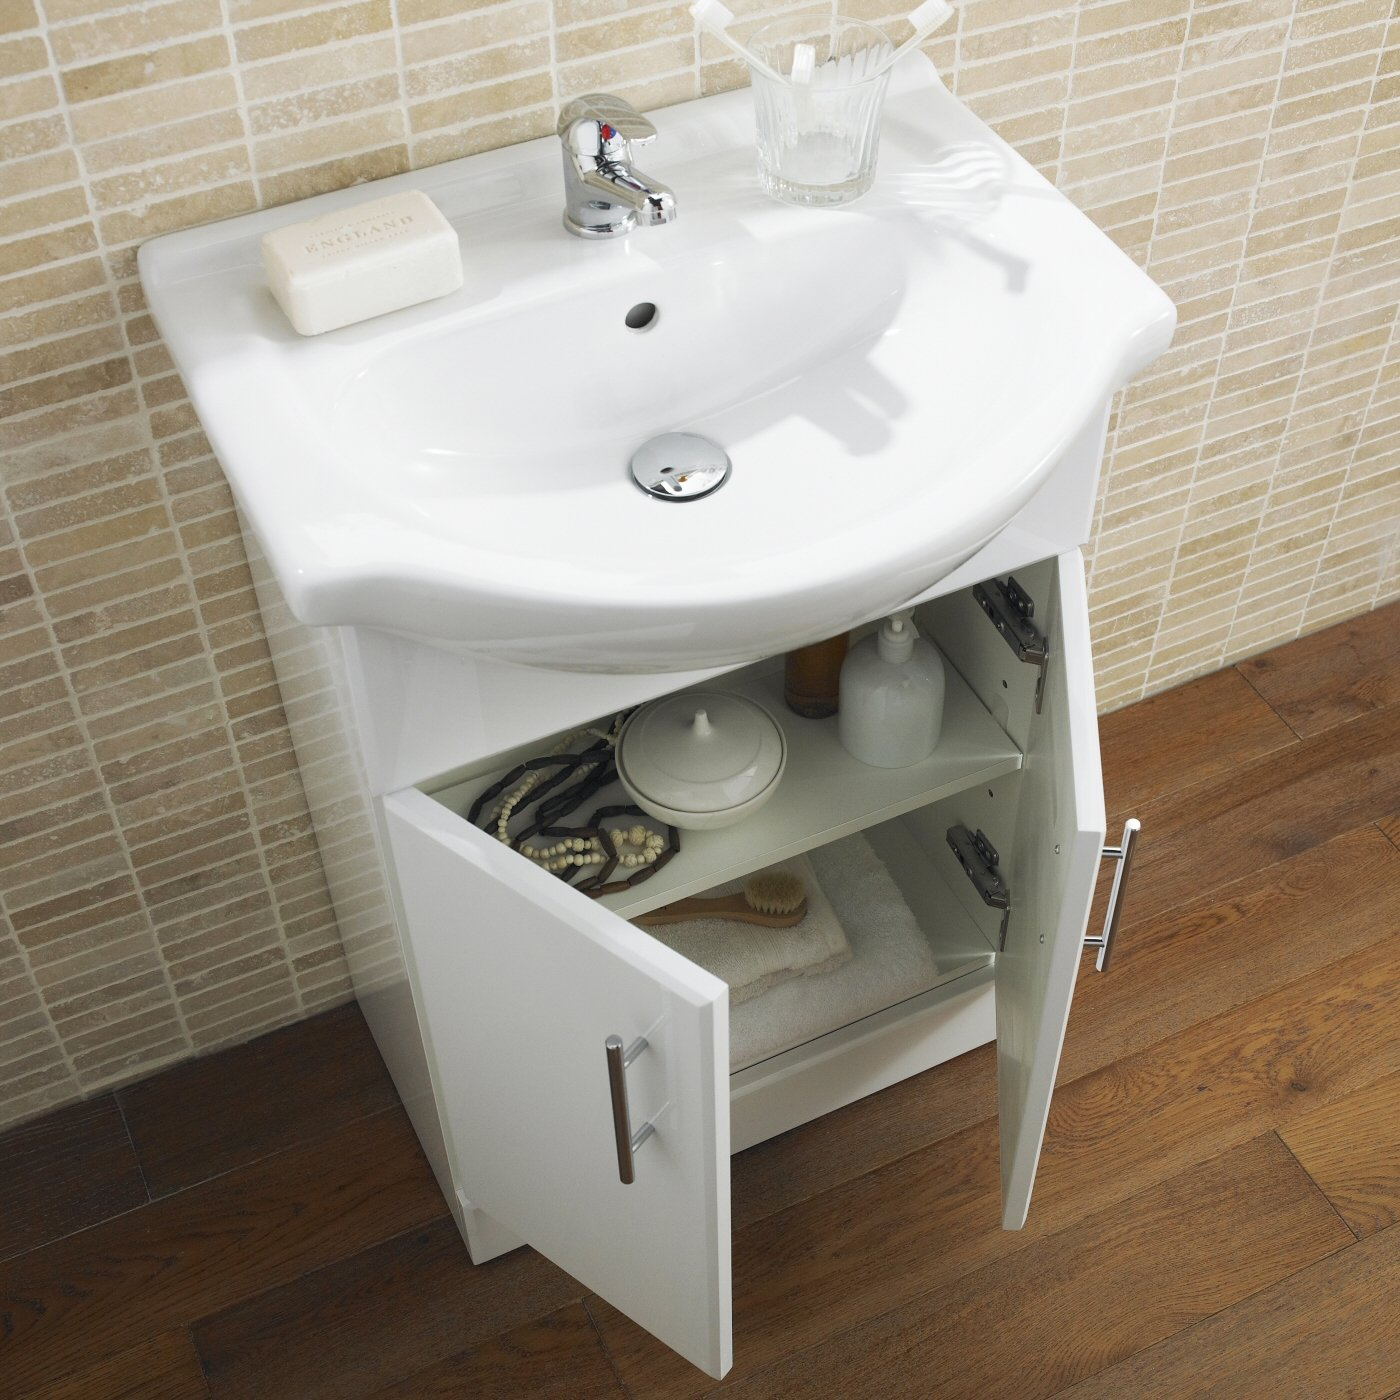 White Gloss Bathroom Vanity Unit Basin Sink 550mm Cloakroom ...